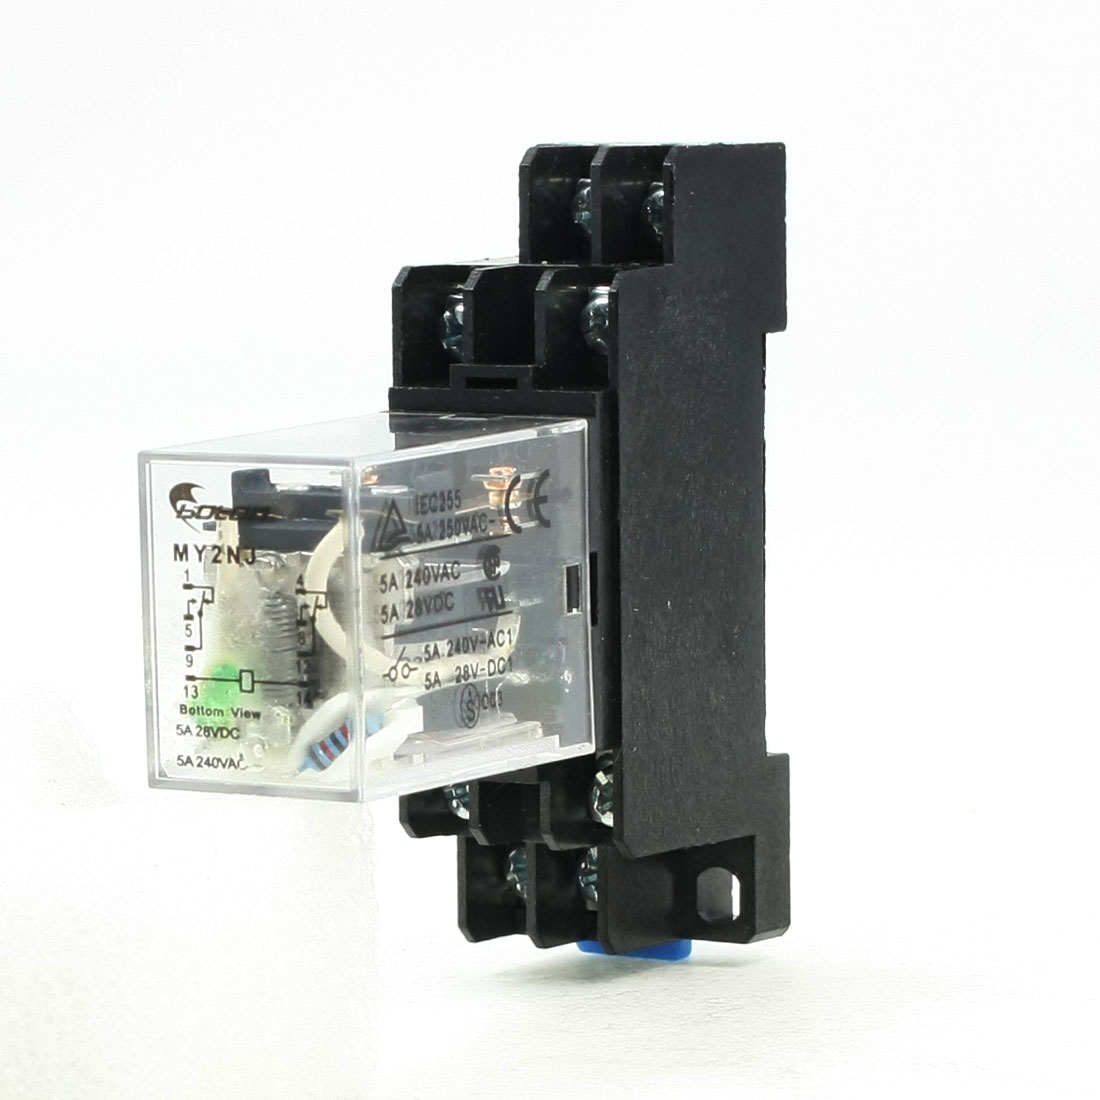 MY2NJ 24V DC Coil General Purpose Power Relay 8Pin 5A 240VAC/28VDC w Socket